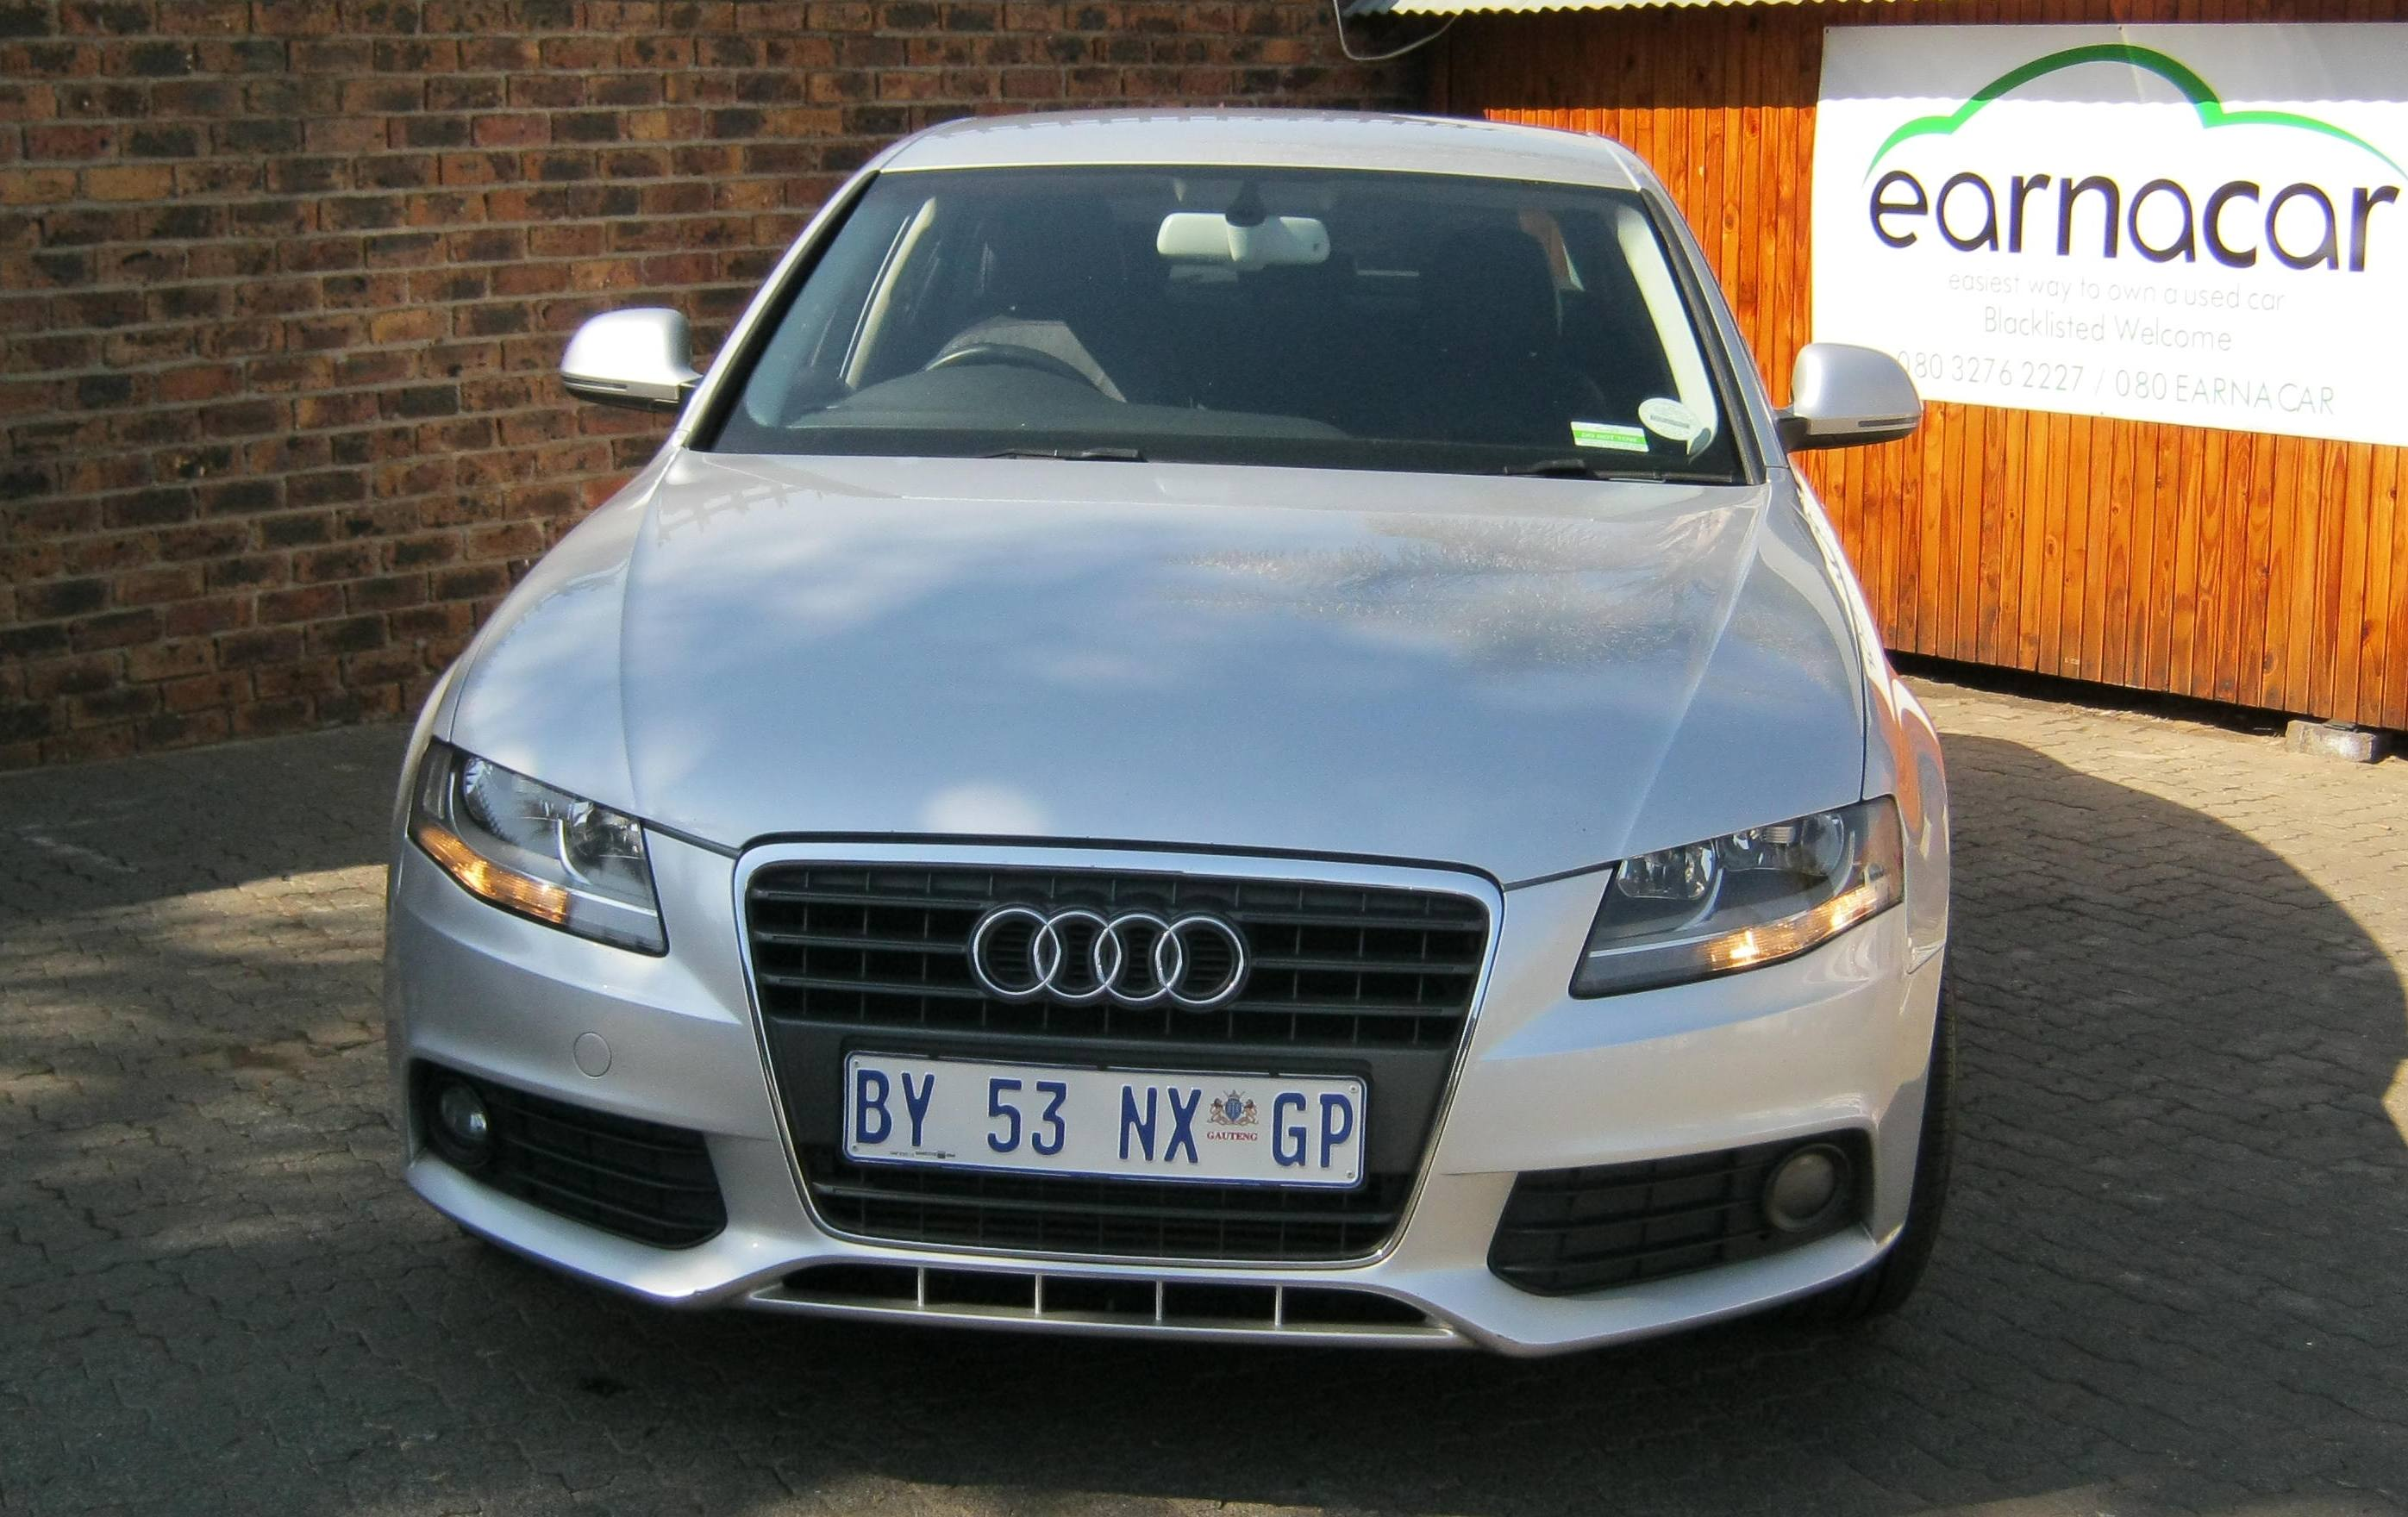 Audi A4 1.8T Ambition Silver 2010